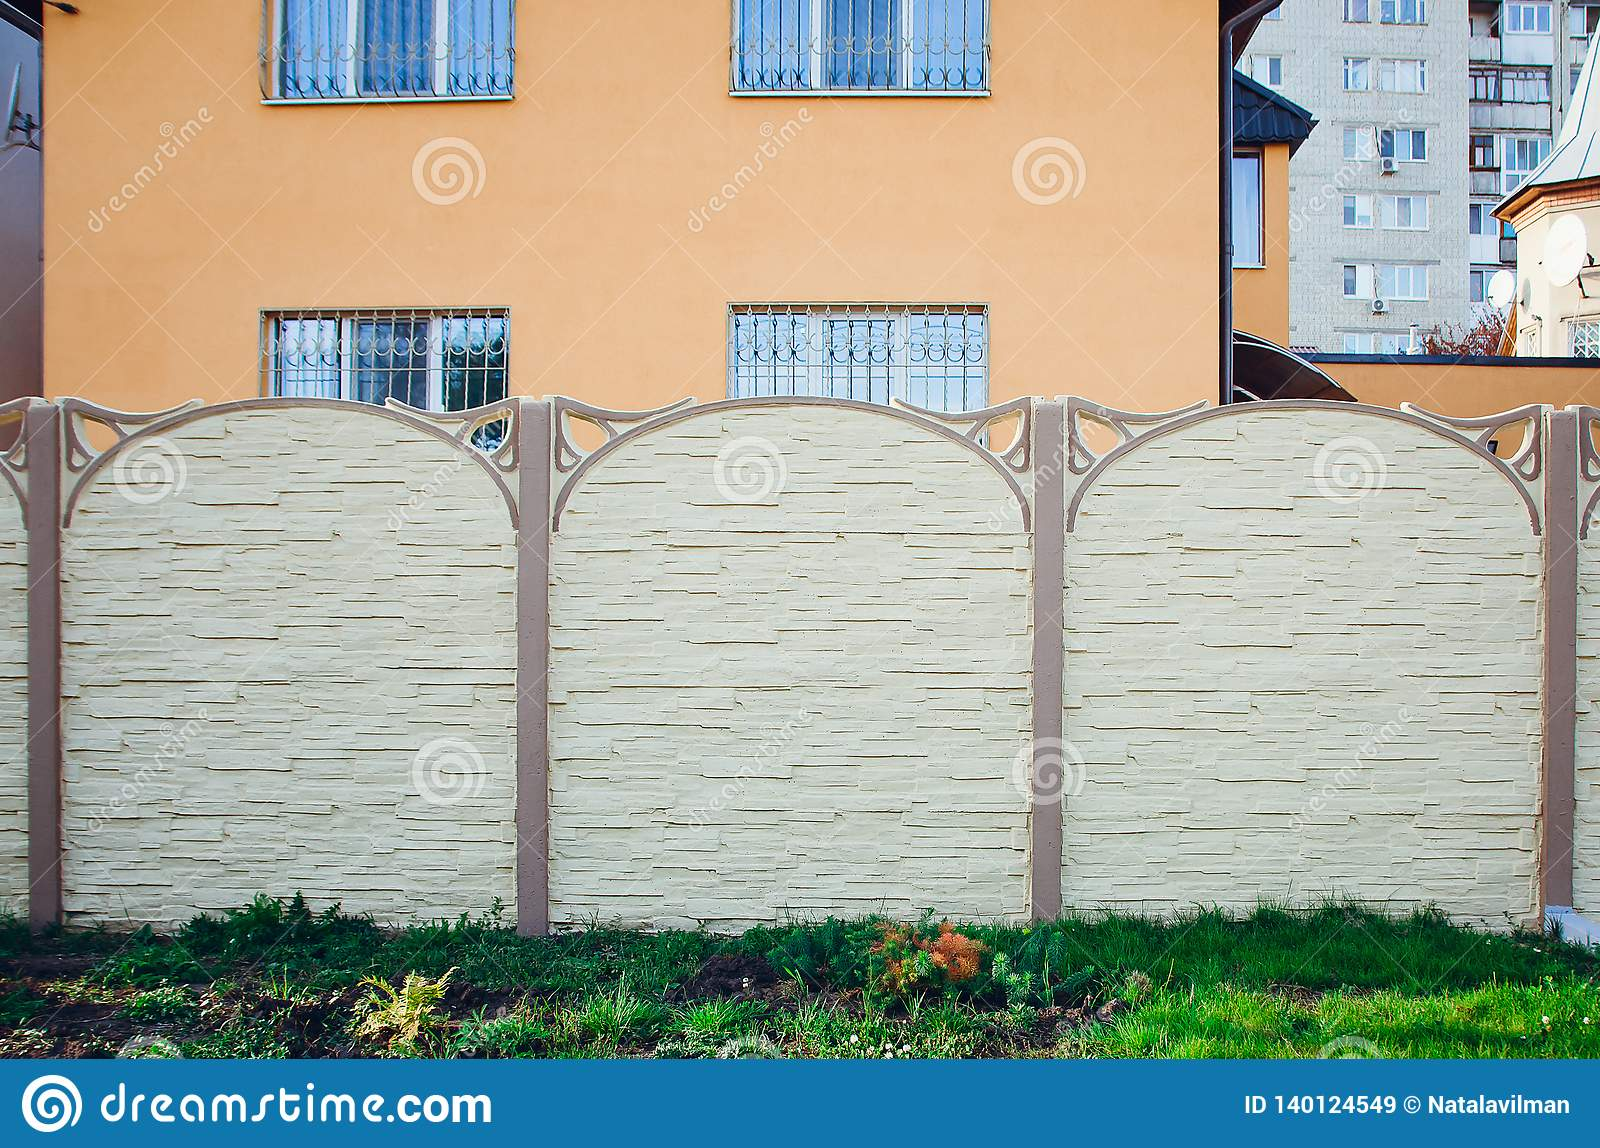 Beautiful Concrete Fence Of Modern Style Design Fence Ideas Front View Stock Image Image Of Closen Decor 140124549